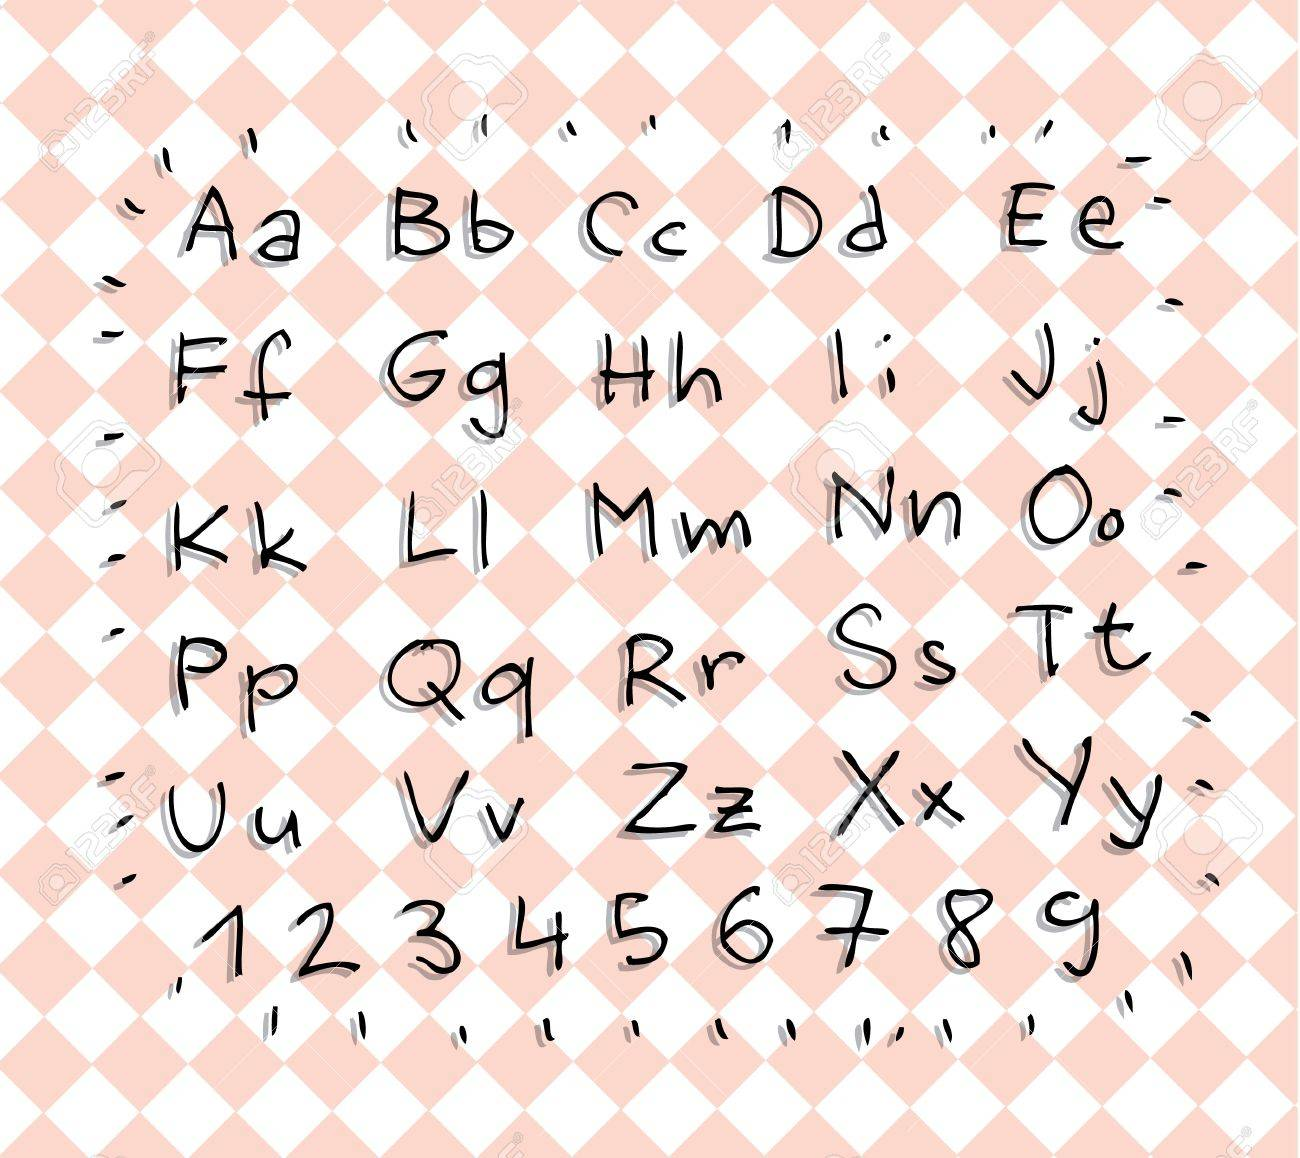 Hand Drawn Alphabet ABC with shadows on pink-gridded-napkin Stock Vector - 17188085